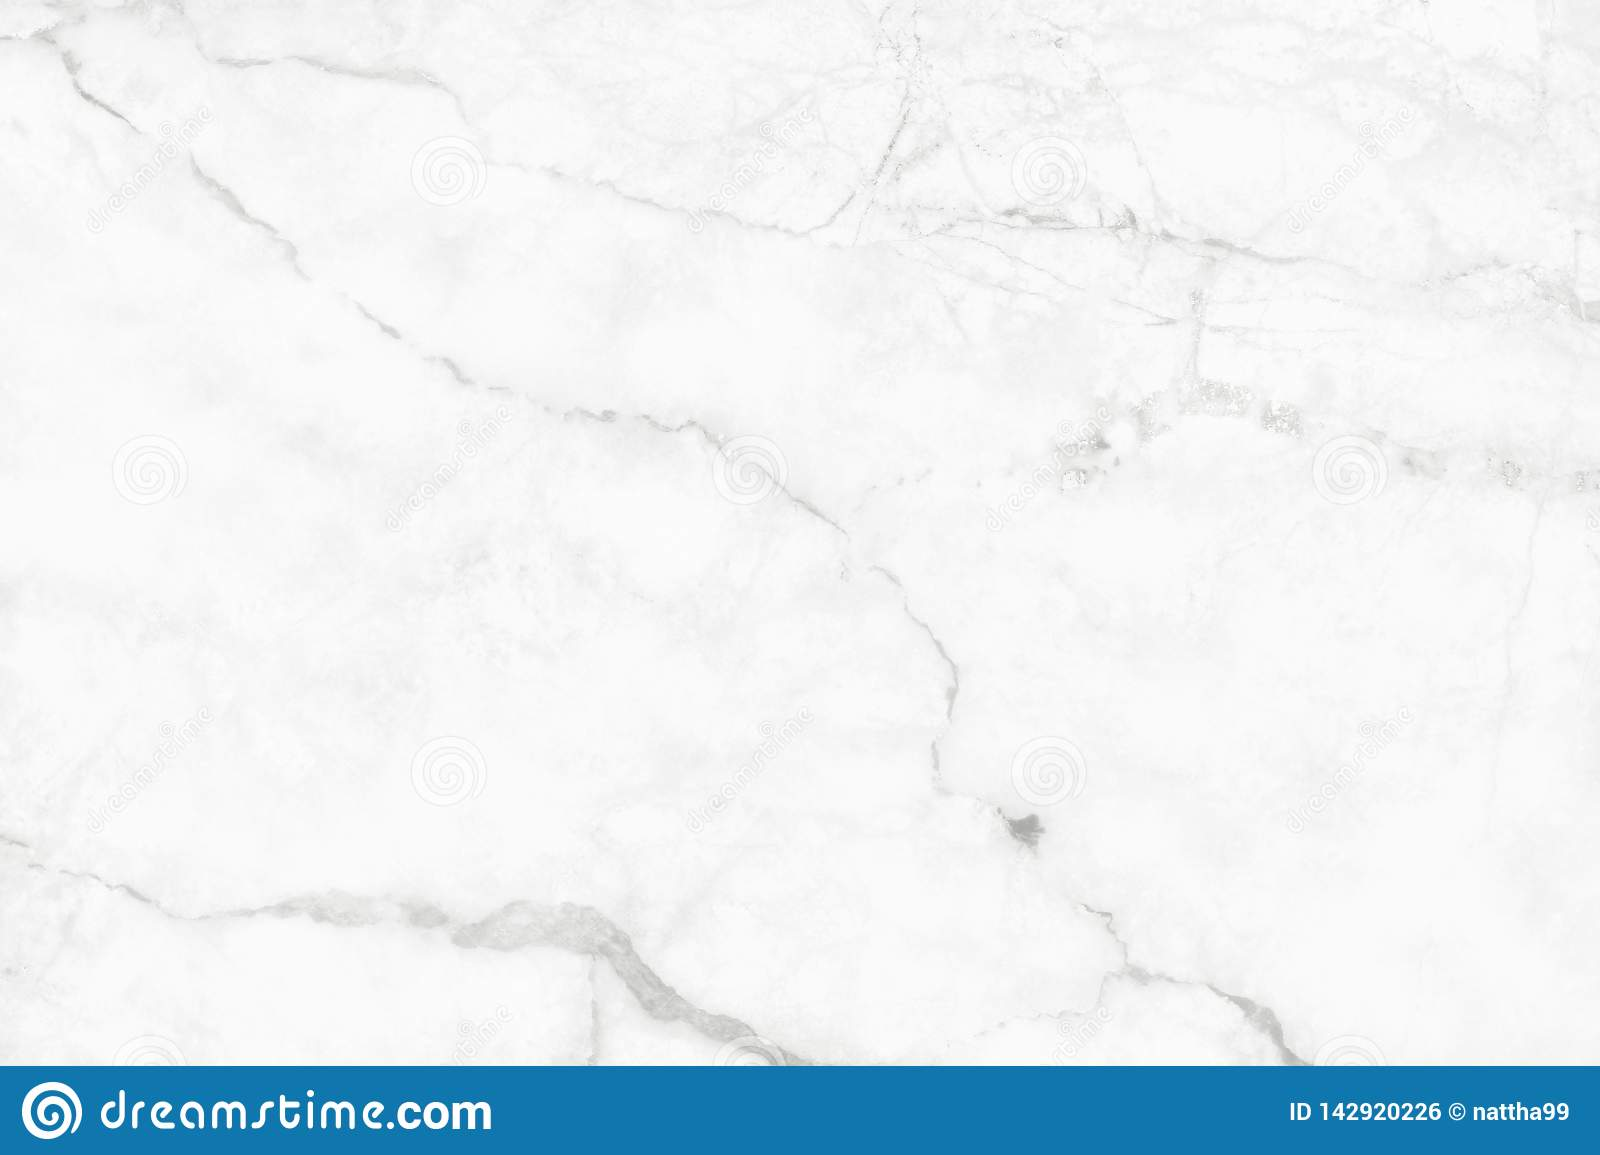 White grey marble texture background with high resolution, top view of natural tiles stone in luxury and seamless glitter pattern